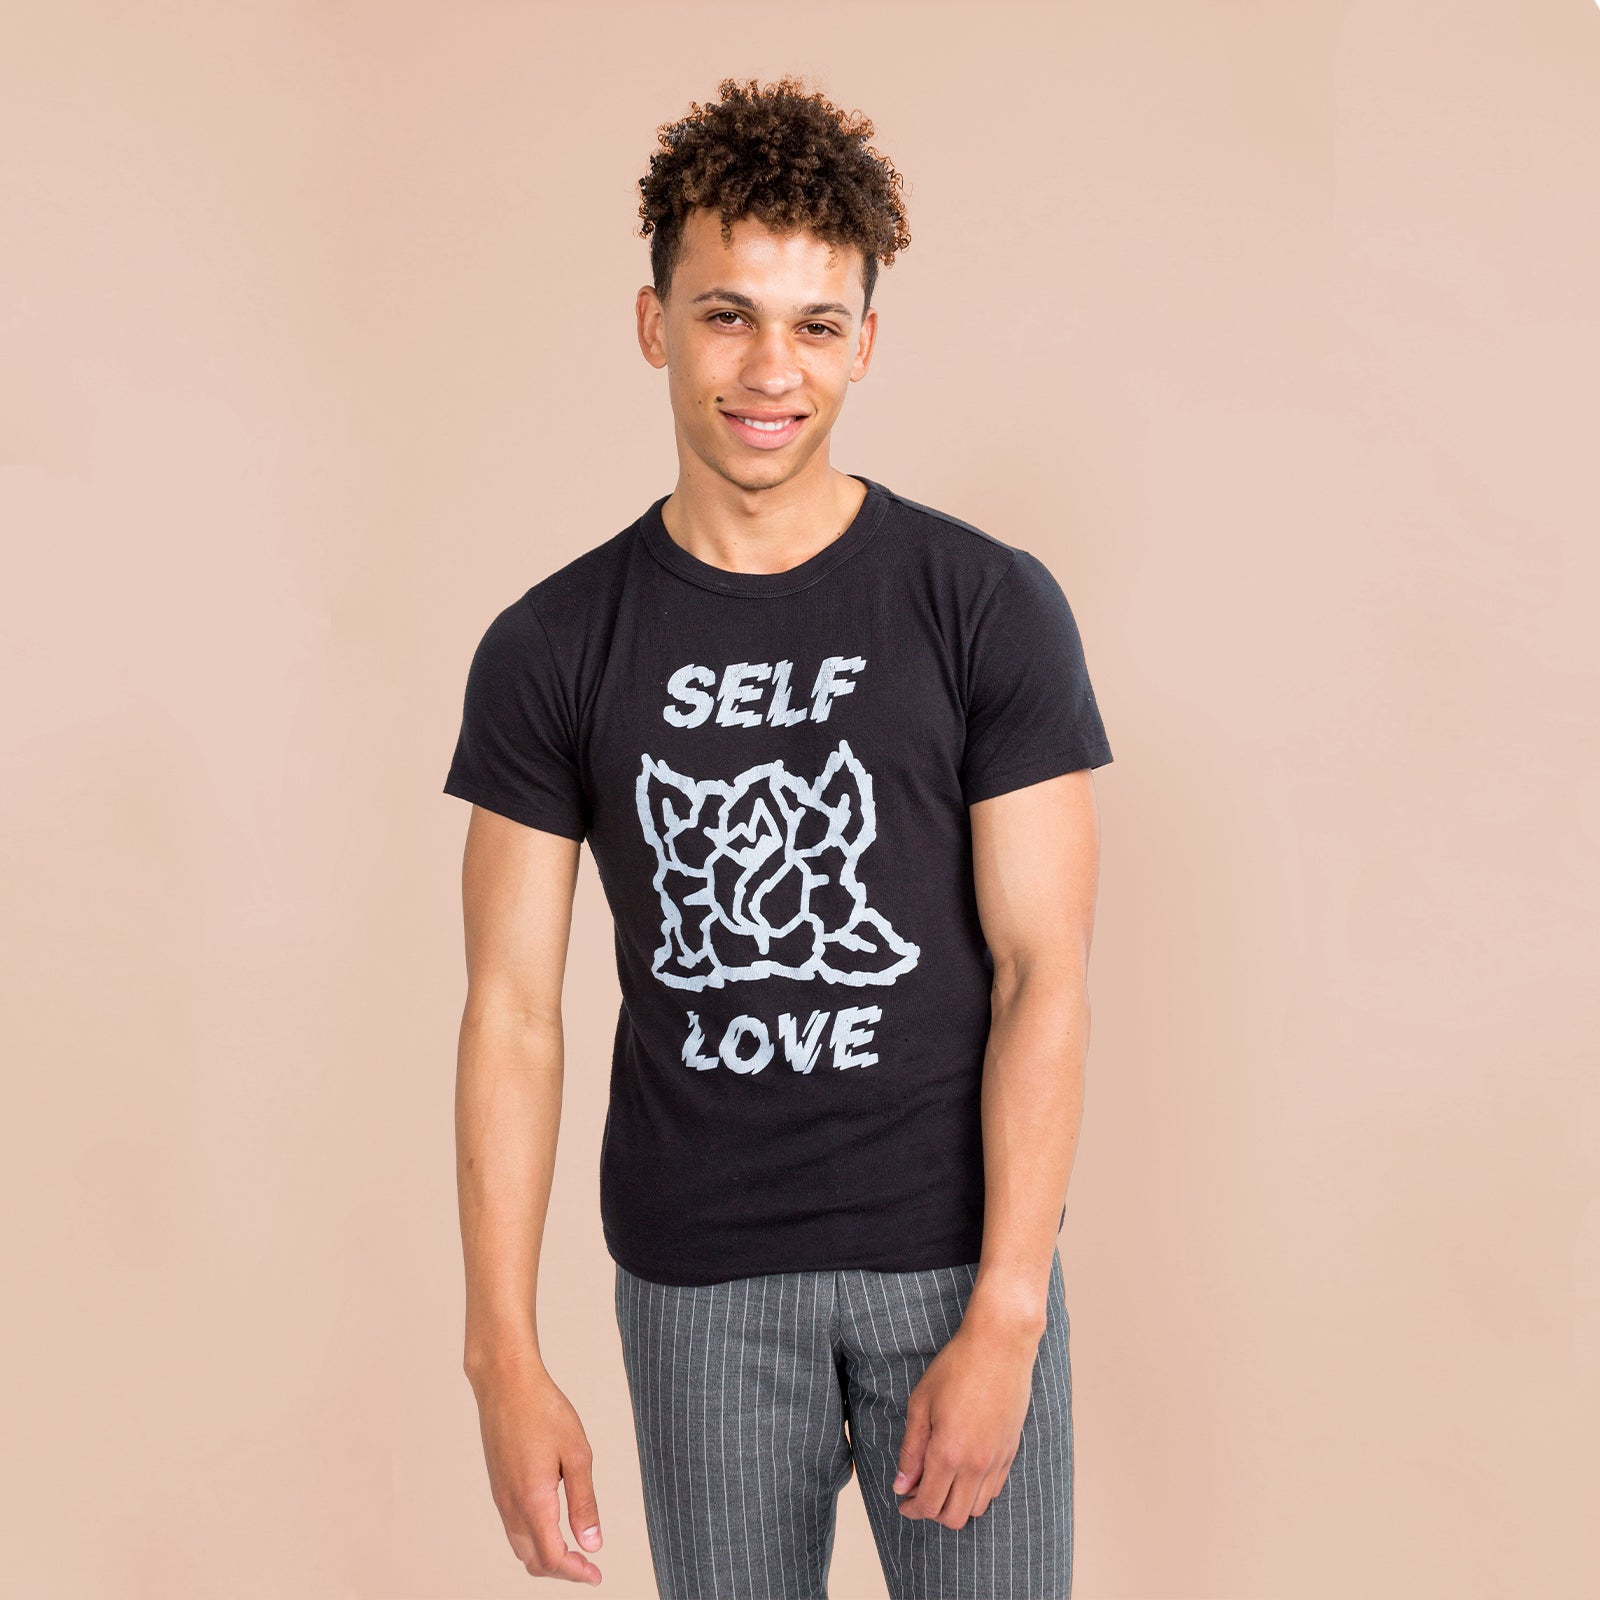 Self-Love Roadshow T-Shirt Regular Fit